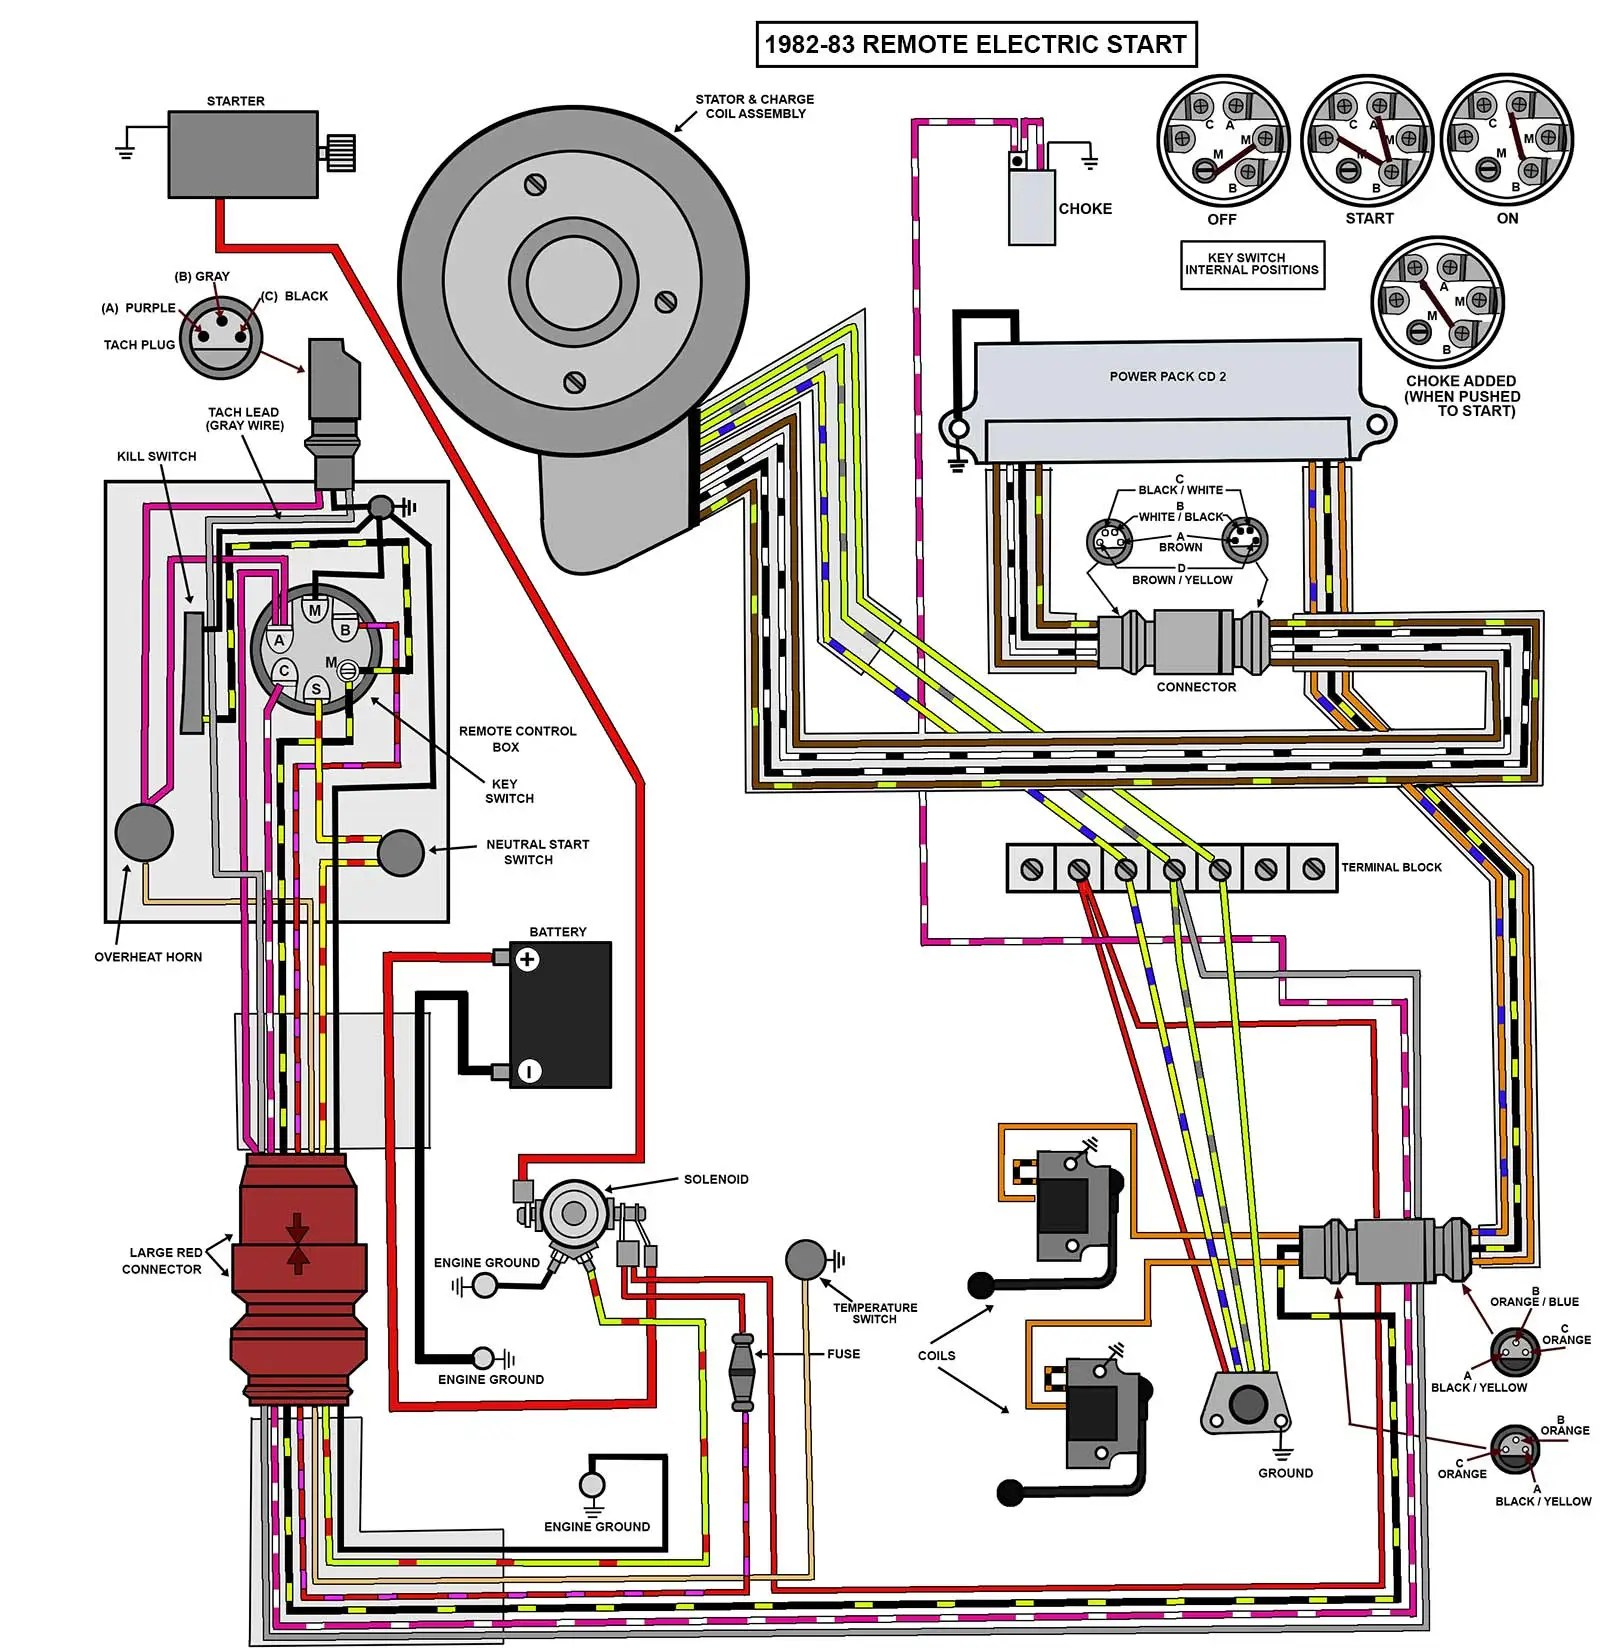 hight resolution of johnson 150 outboard wiring diagram data wiring diagram johnson 1997 outboard 115 hp wiring diagram 150